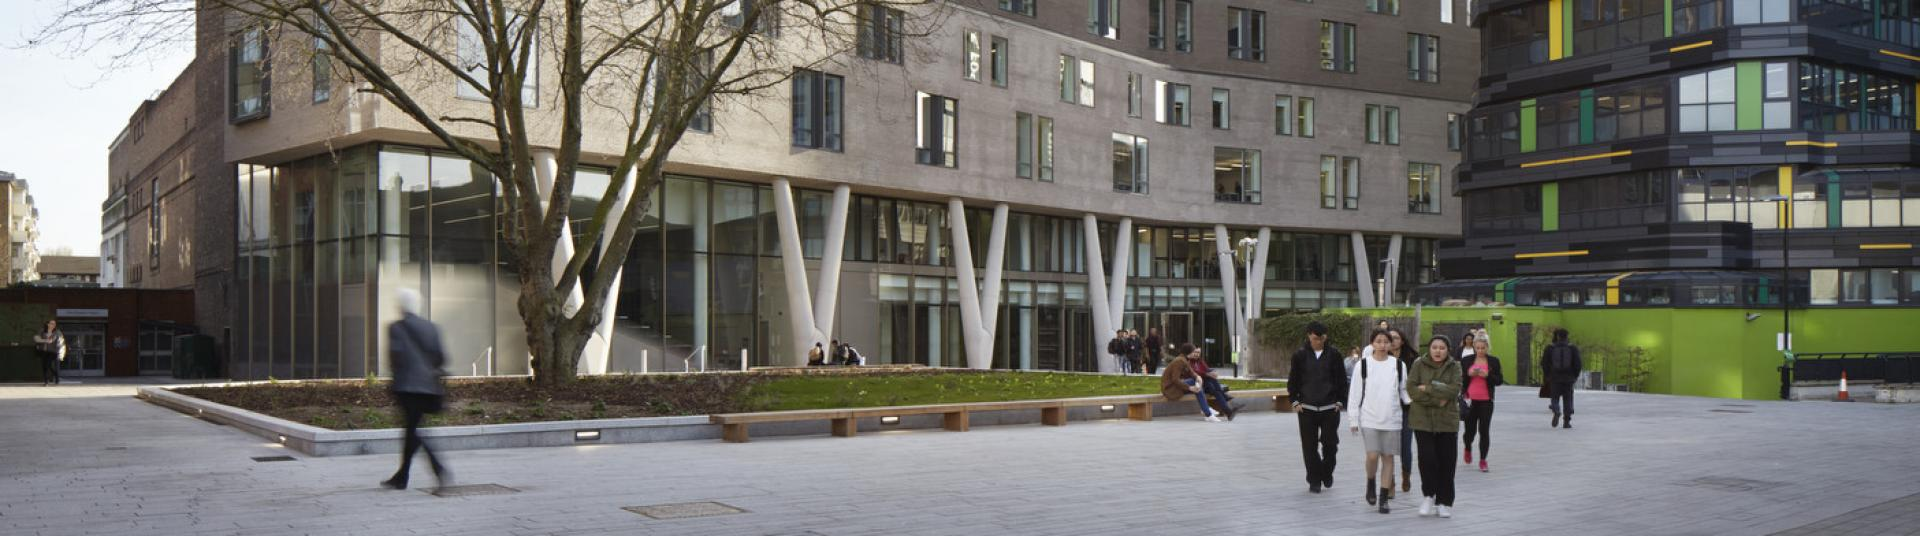 A picture of a large building, part of Queen Mary University of London's campus